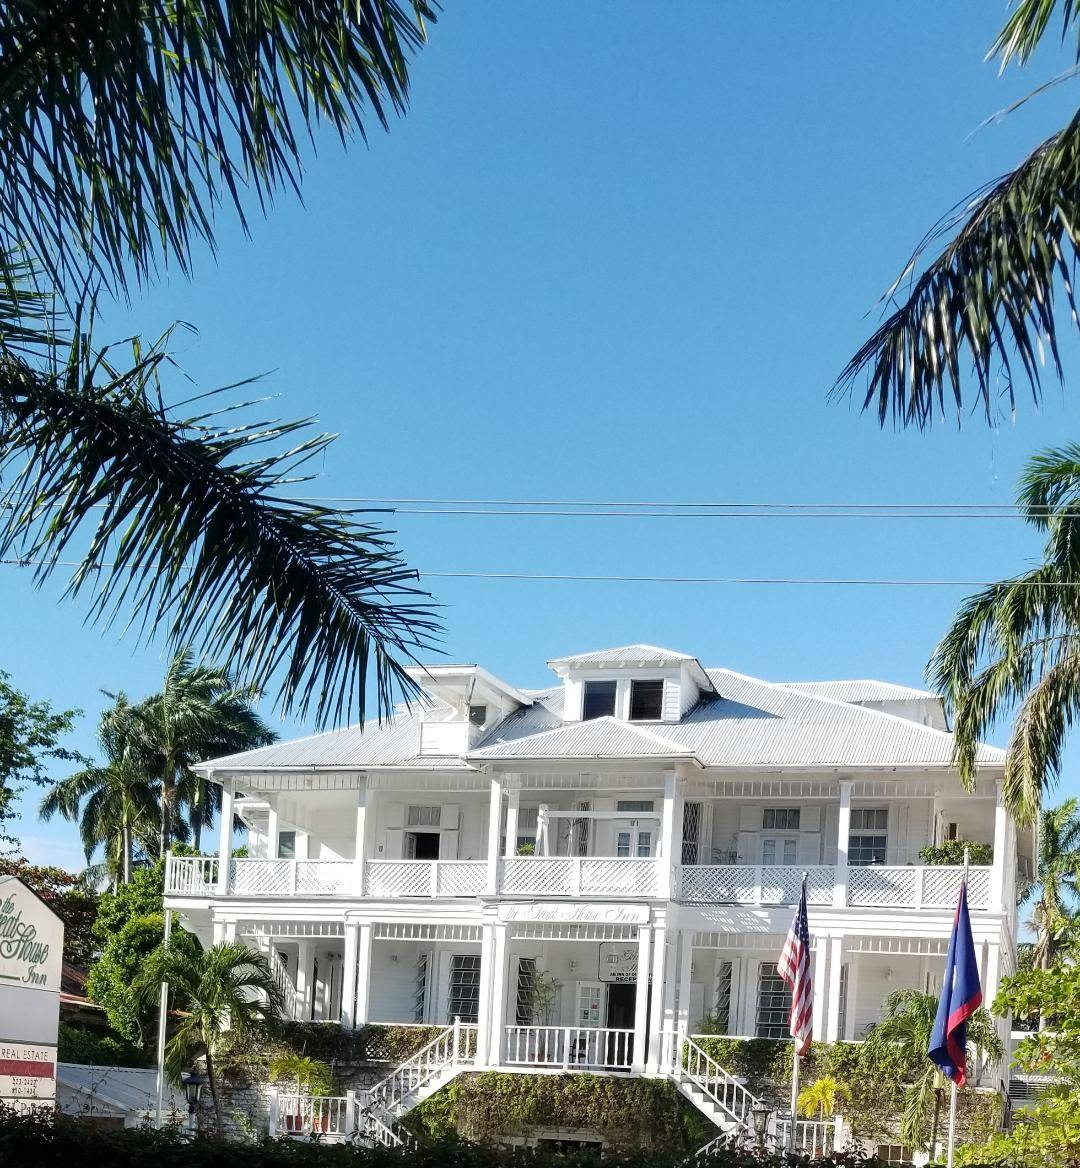 BED AND BREAKFAST/HOTEL, BELIZE CITY